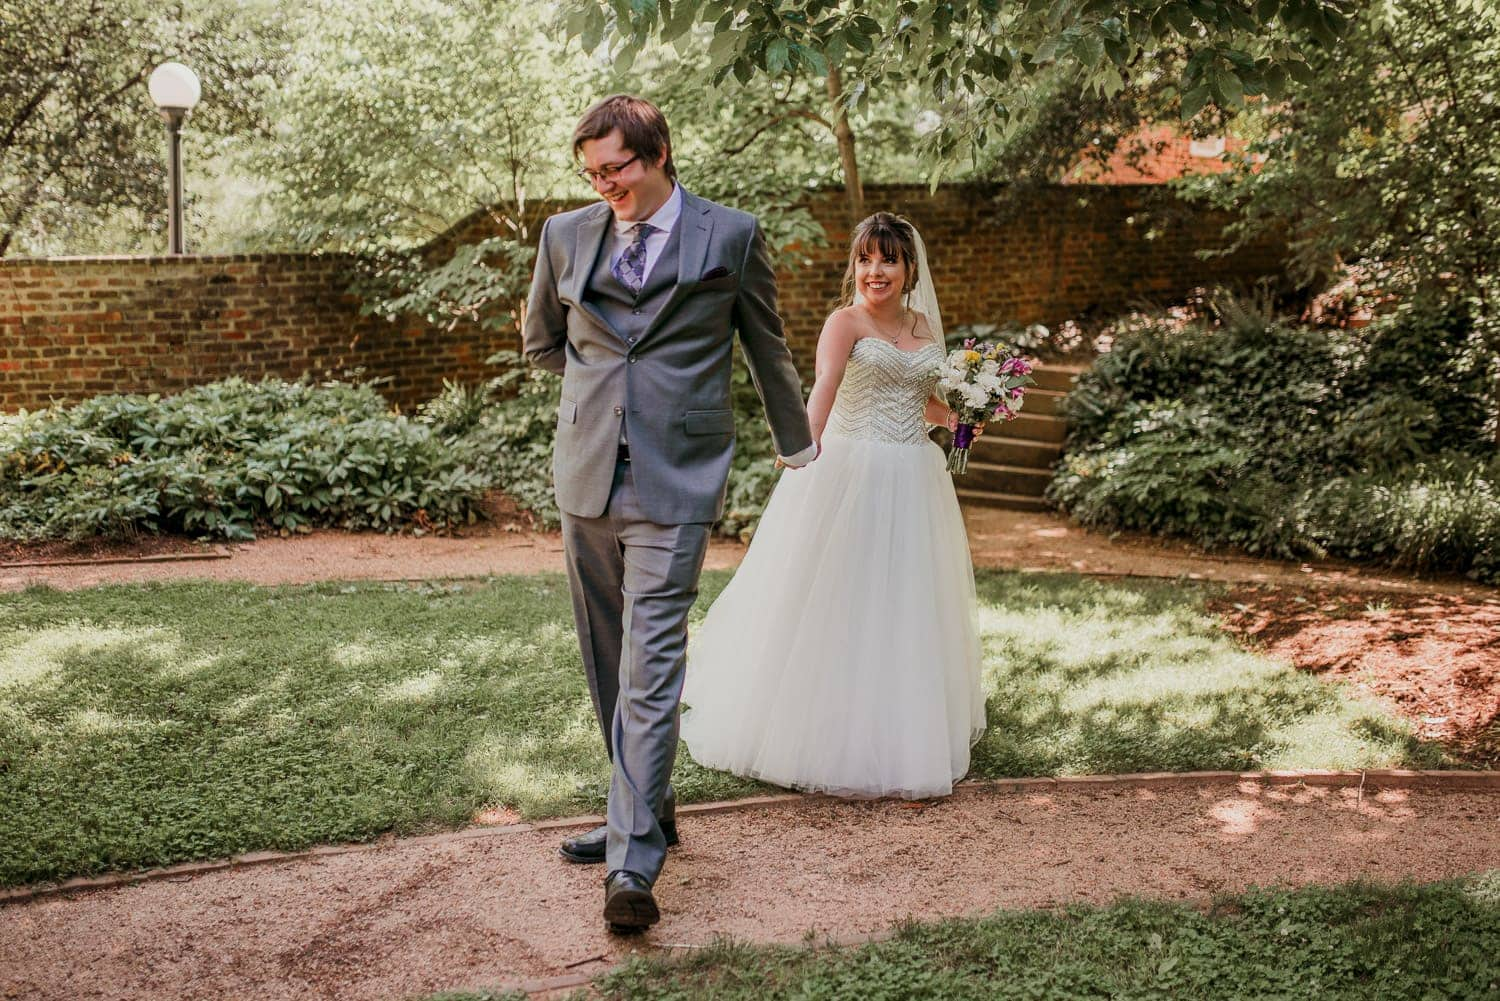 The bride and groom are holding hands. The groom is facing away from the bride. They are in a green garden at the University of Virginia.